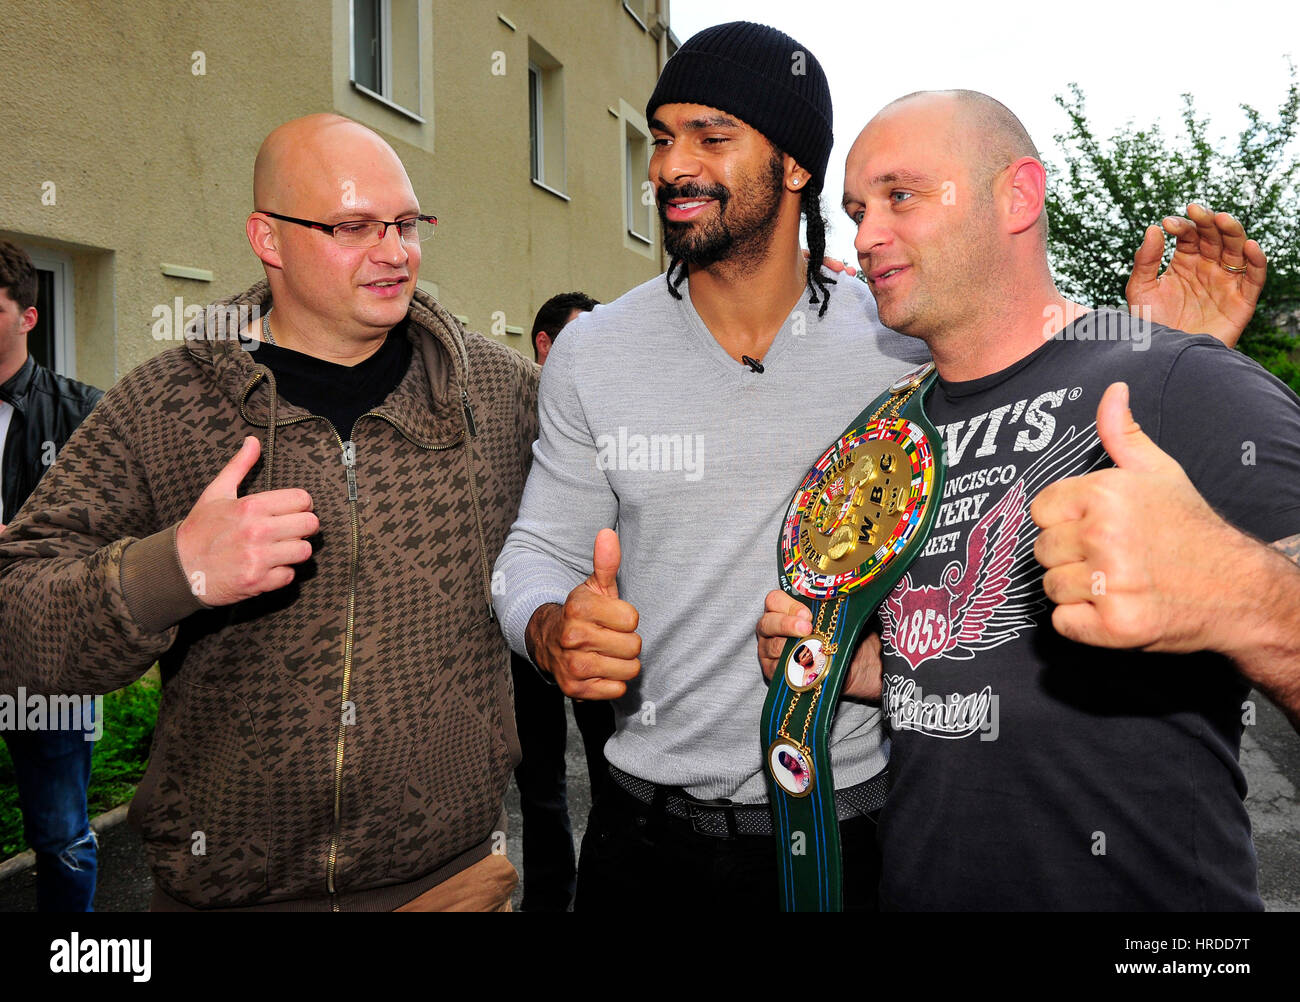 British boxer David Haye signs autographs as he arrives at Hotel before he gets a Luxembourg Licence from Luxembourg - Stock Image